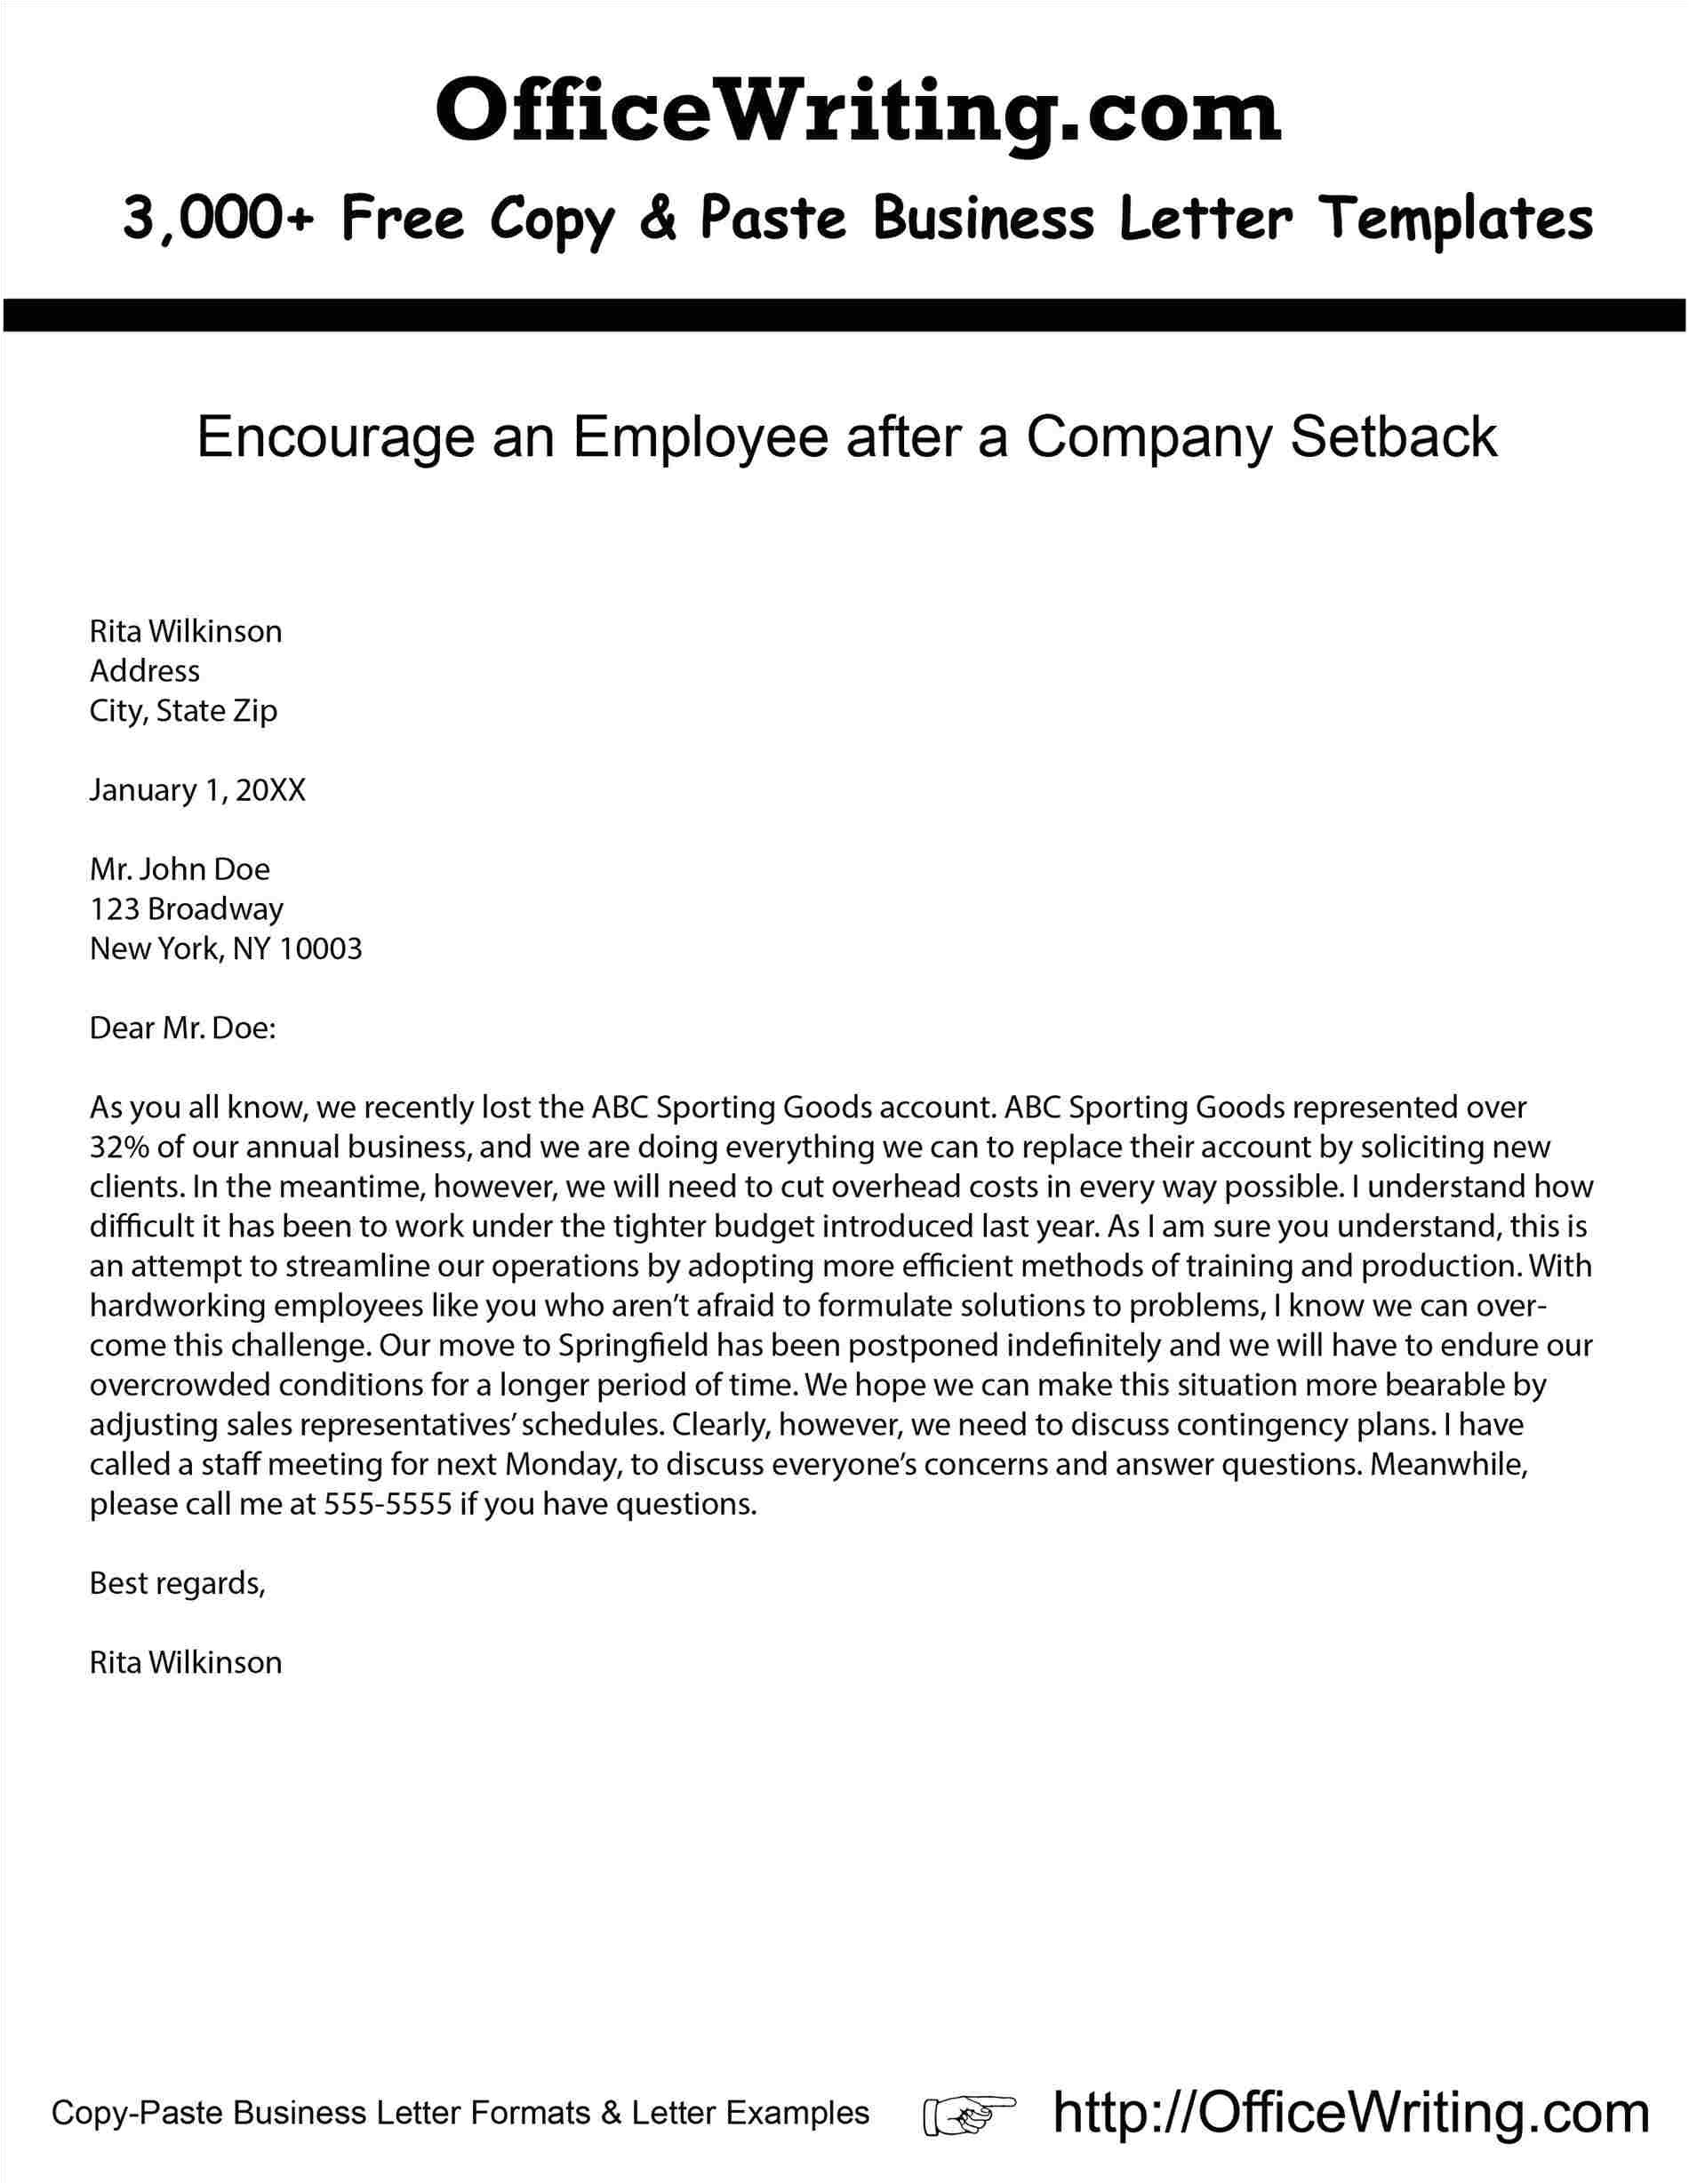 Forbes How to Write A Cover Letter Cover Letter Examples forbes Cover Letter